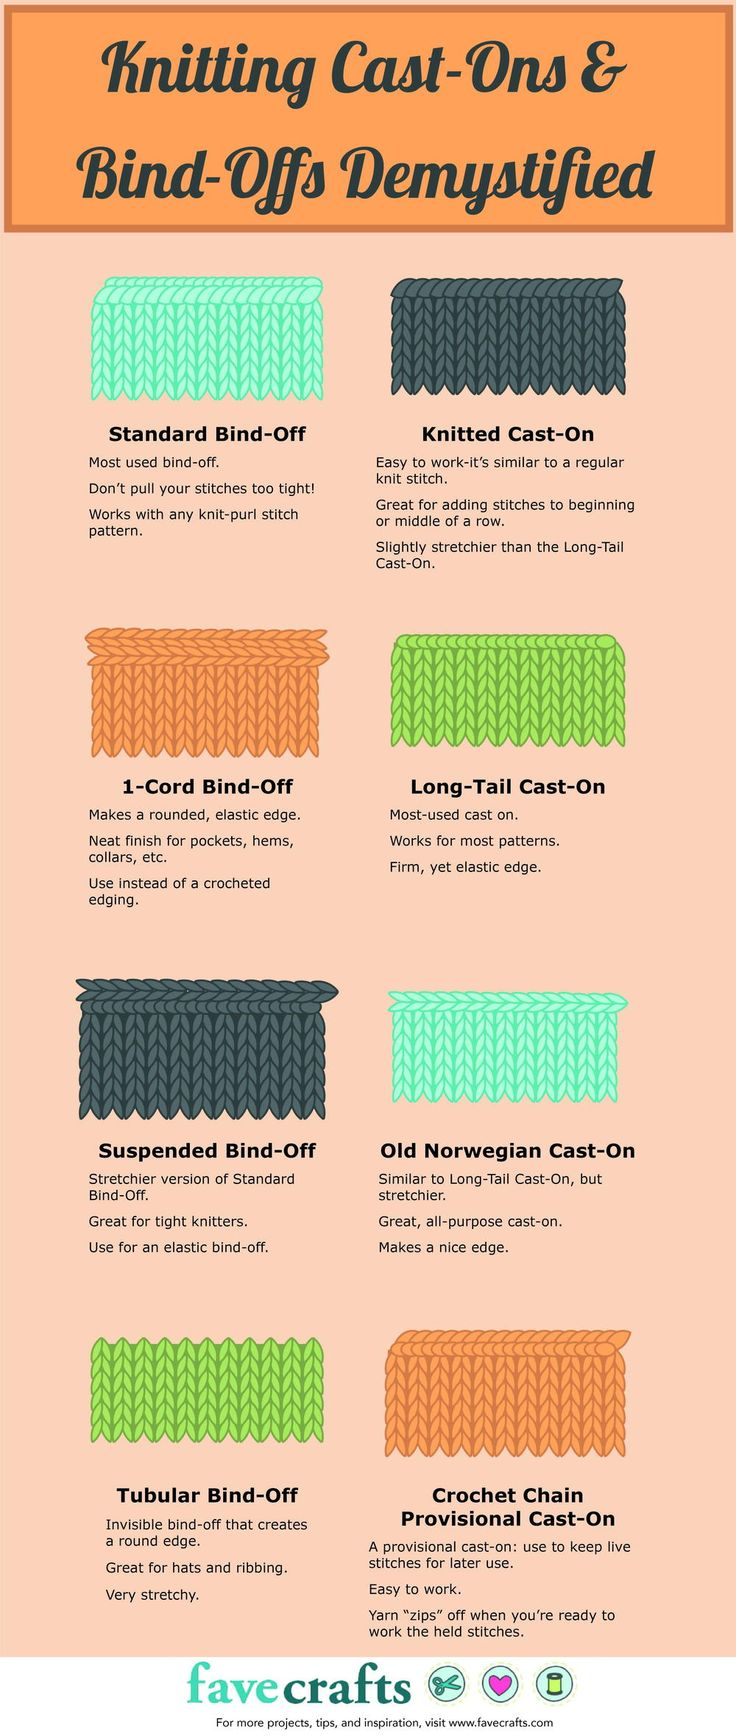 This Knitting Cast On and Knitting Bind Off Techniques infographic shows you that you can start and stop your knitting projects in a variety of ways. Get a snapshot of knitting cast-ons and bind-offs with this helpful, demystifying infographic.